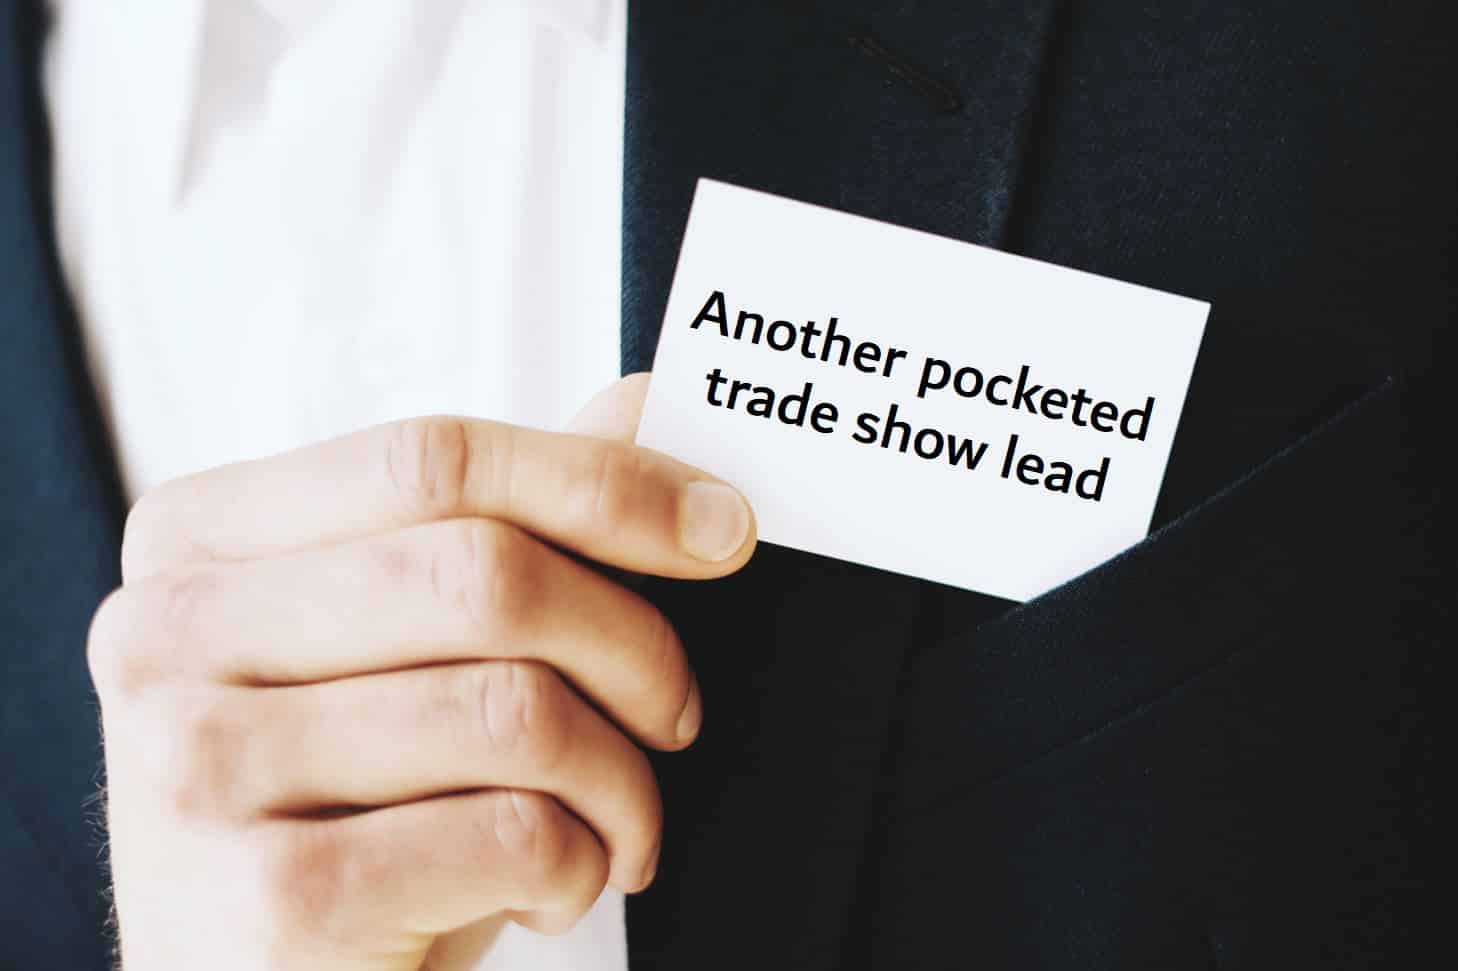 improved lead capture for small trade shows combines game with lead retrieval app